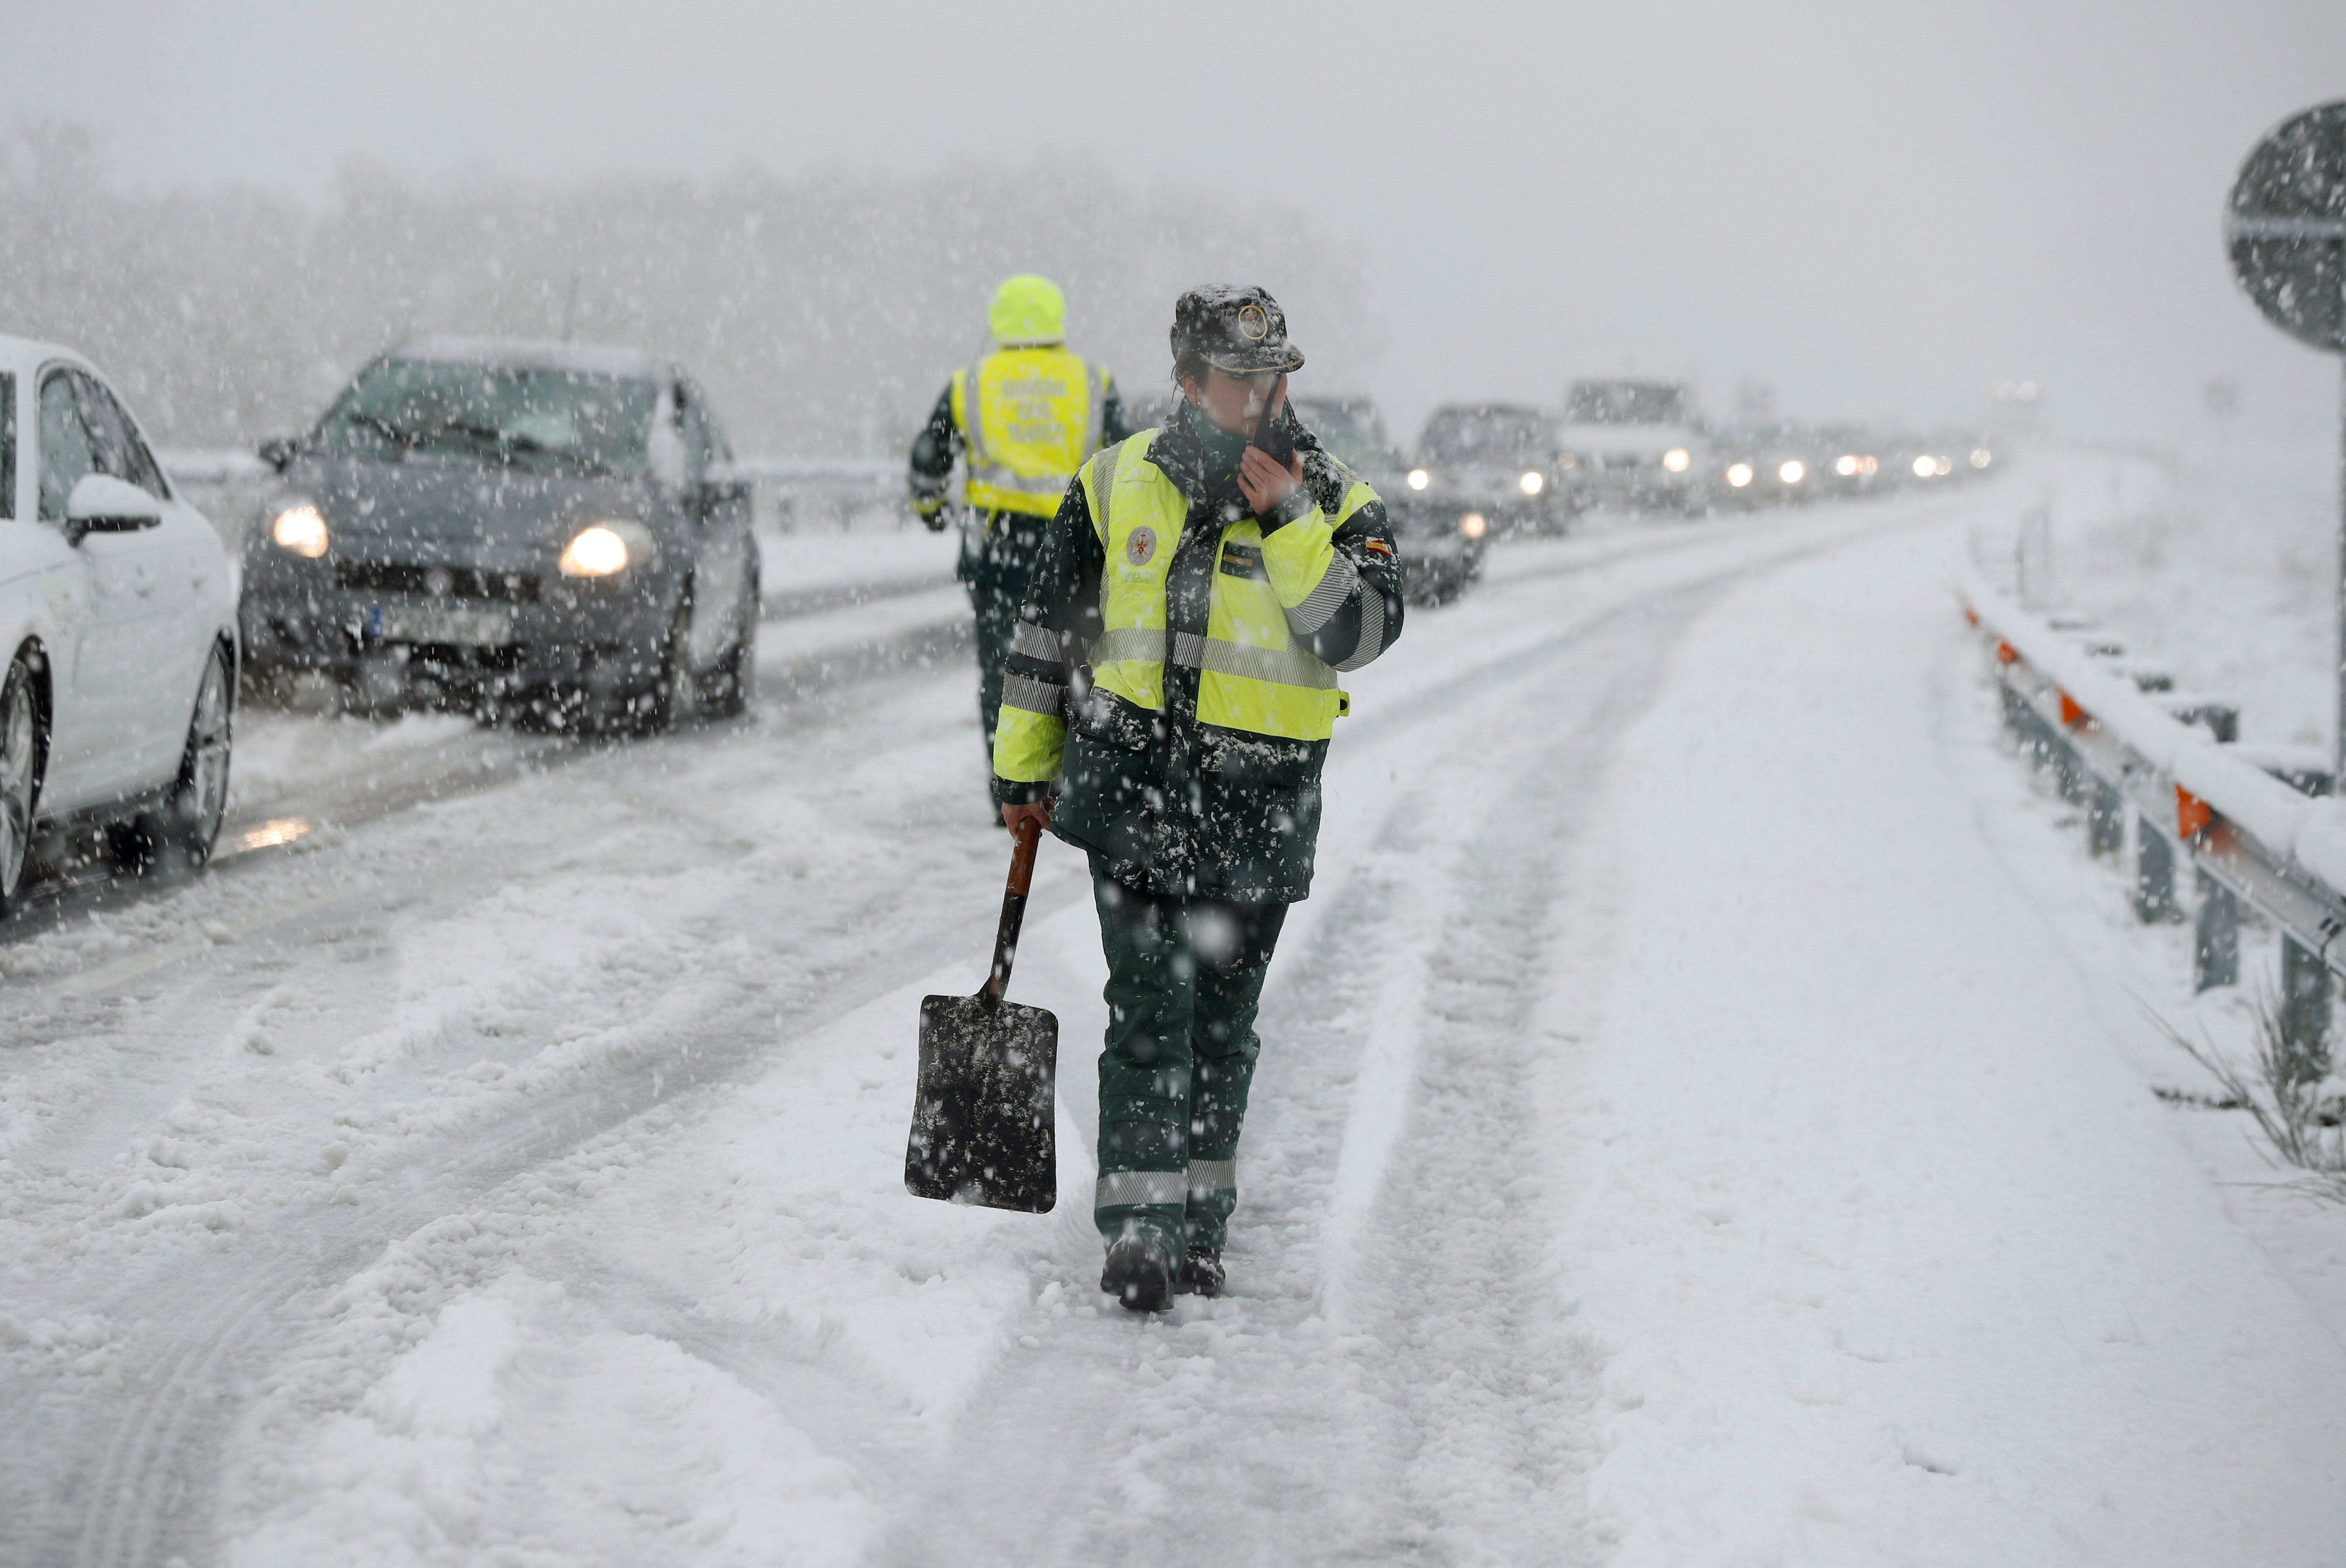 Civil guards control the traffic during snowfall in Lugo, Galicia, Spain.